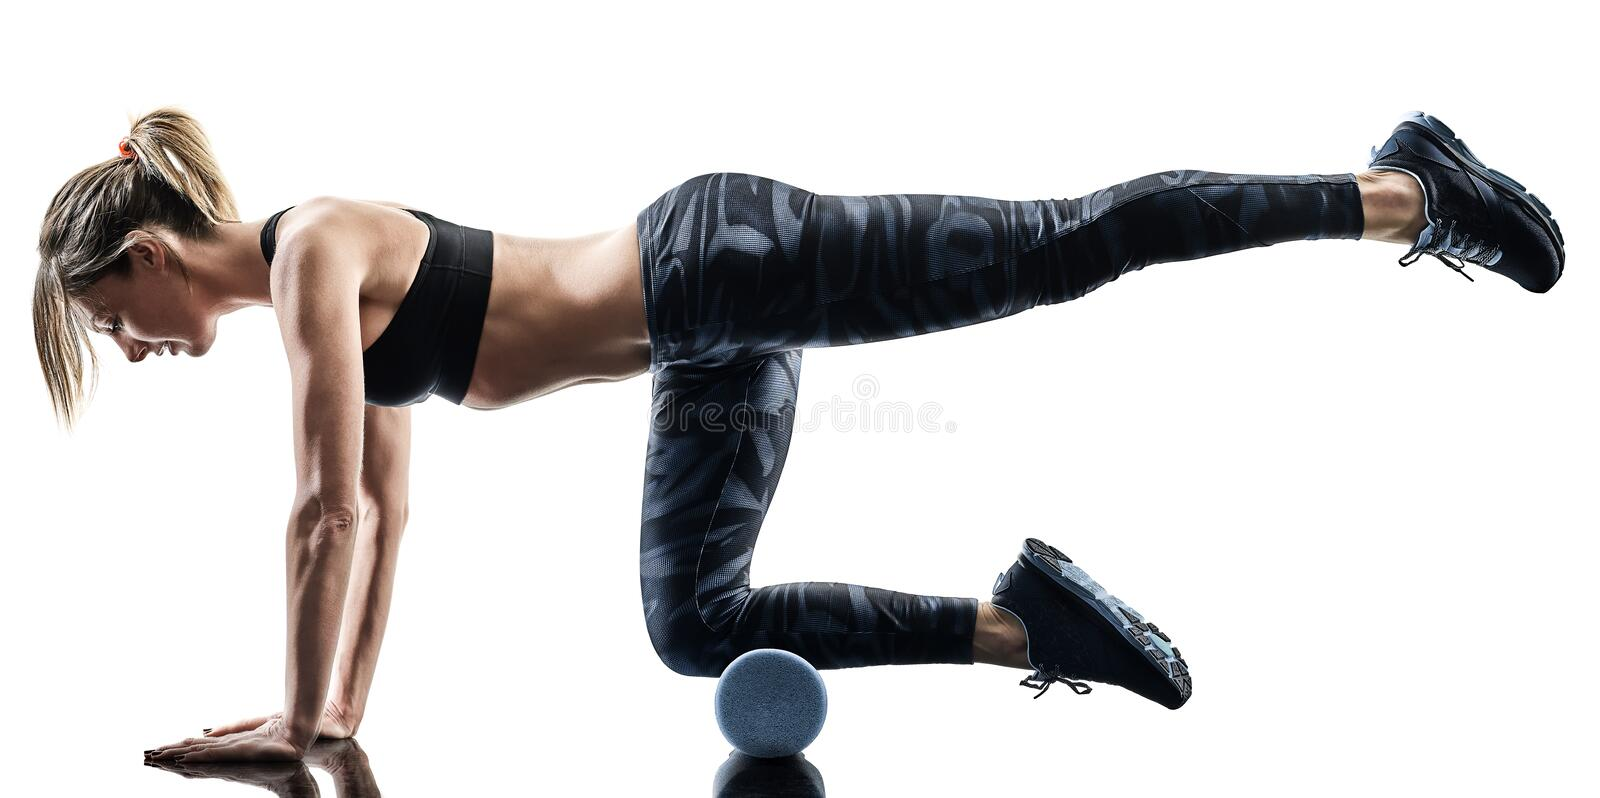 Woman pilates fitness foam roller exercises silhouette isolated stock photo